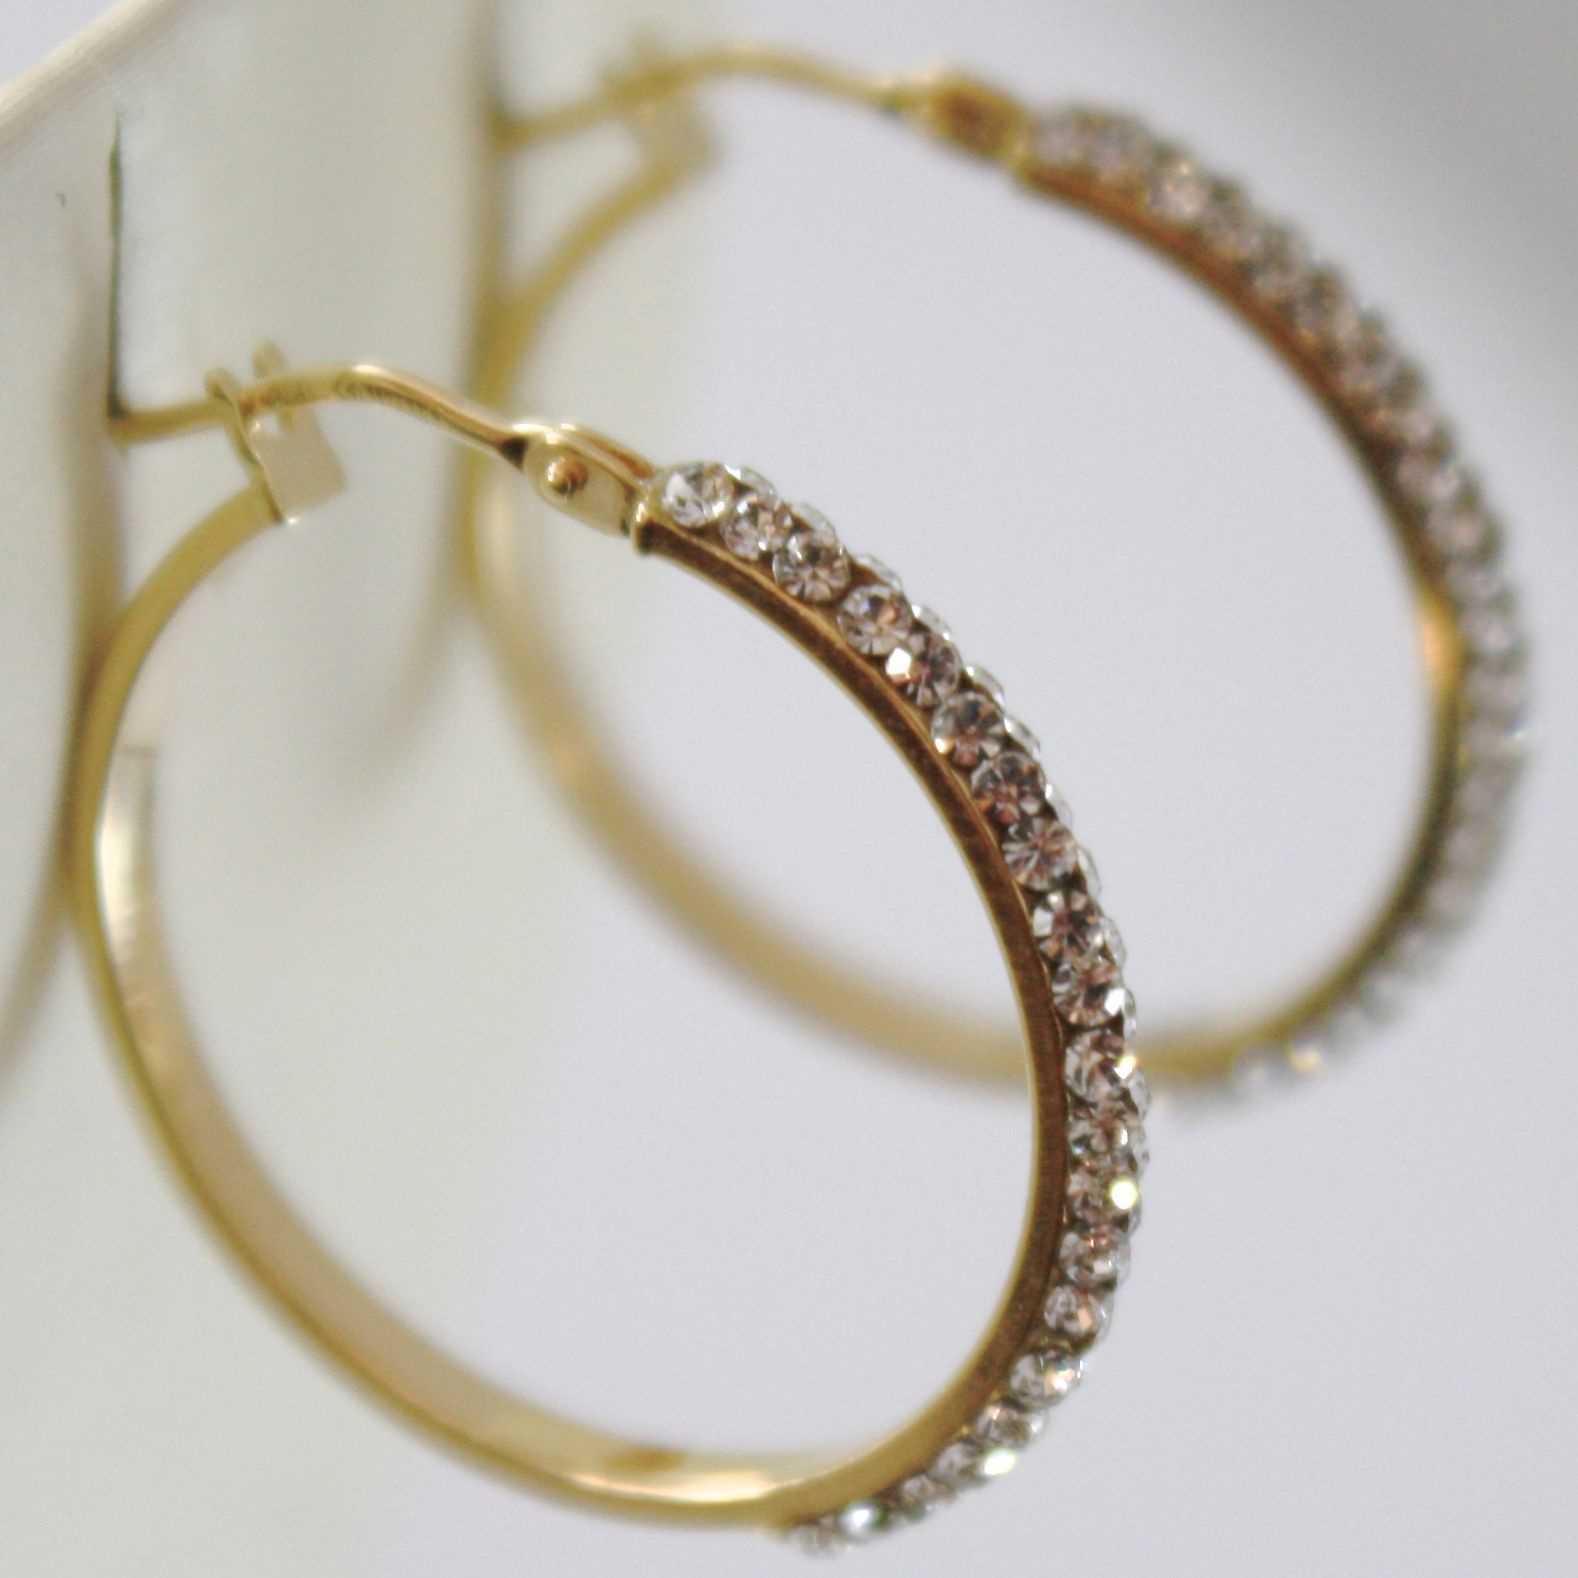 YELLOW GOLD EARRINGS 750 18K CIRCLE, 2.5 CM, WITH CUBIC ZIRCON DOUBLE ROW